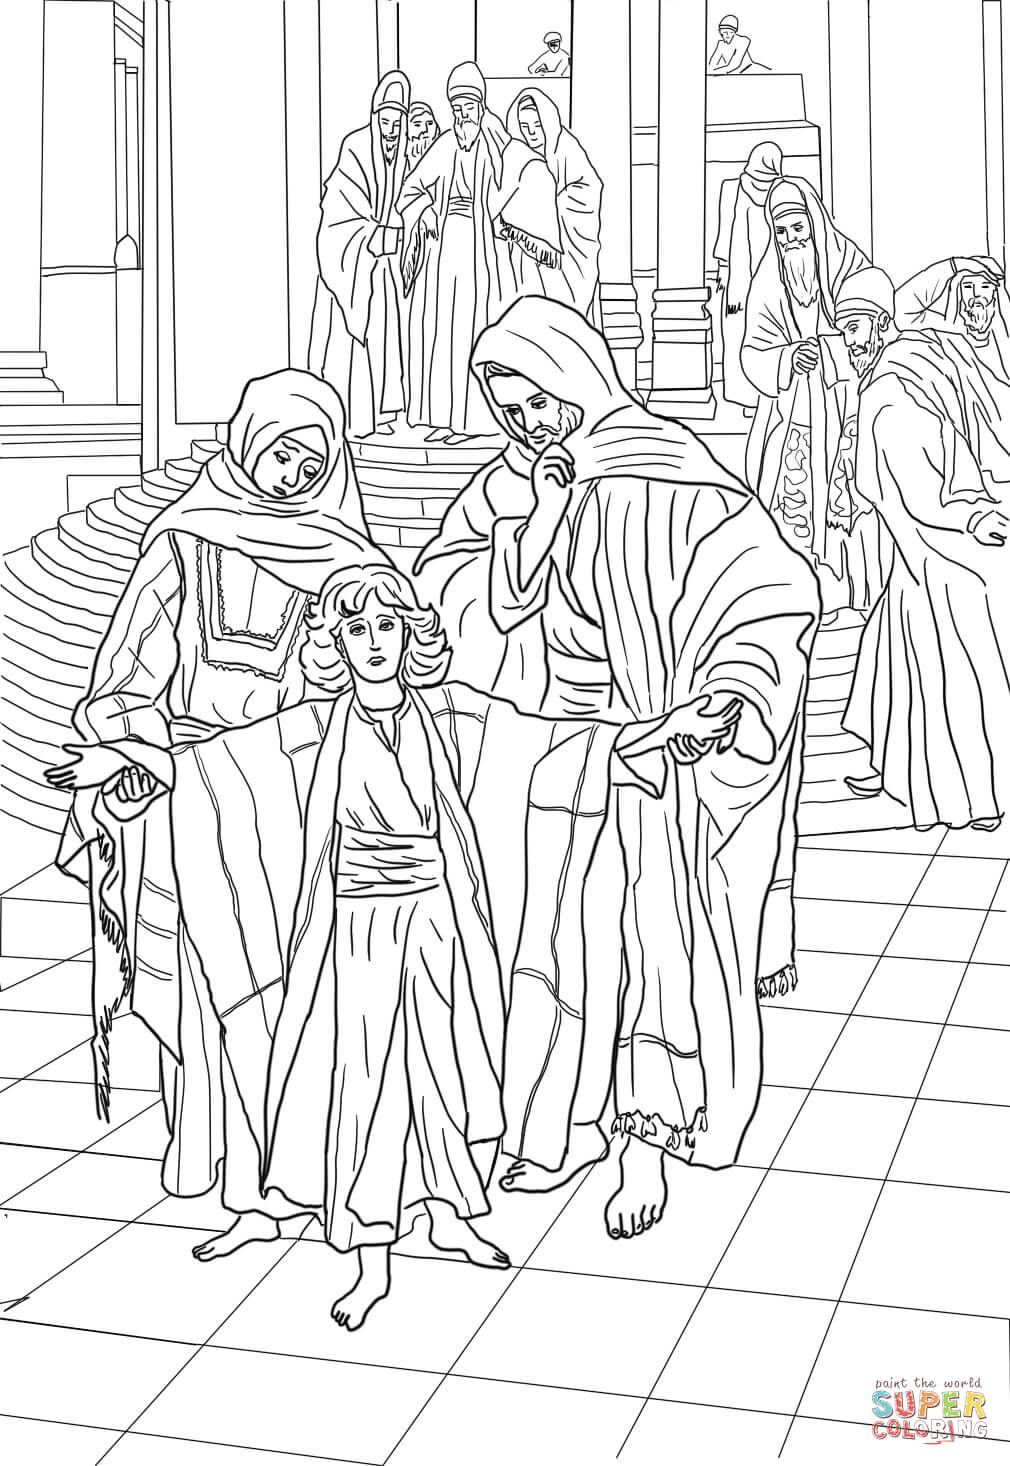 jesus in the temple coloring page free printable jesus coloring pages for kids in page temple the jesus coloring